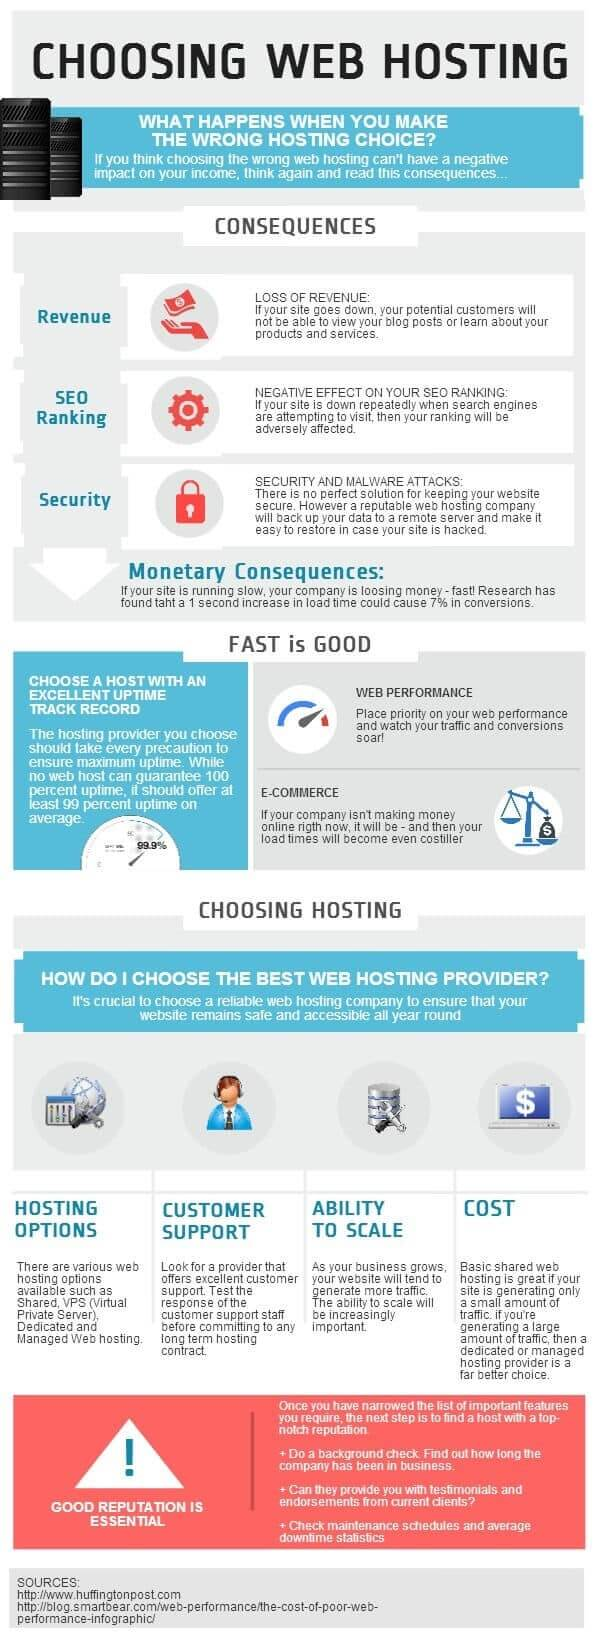 What happens when you make the wrong web hosting choice